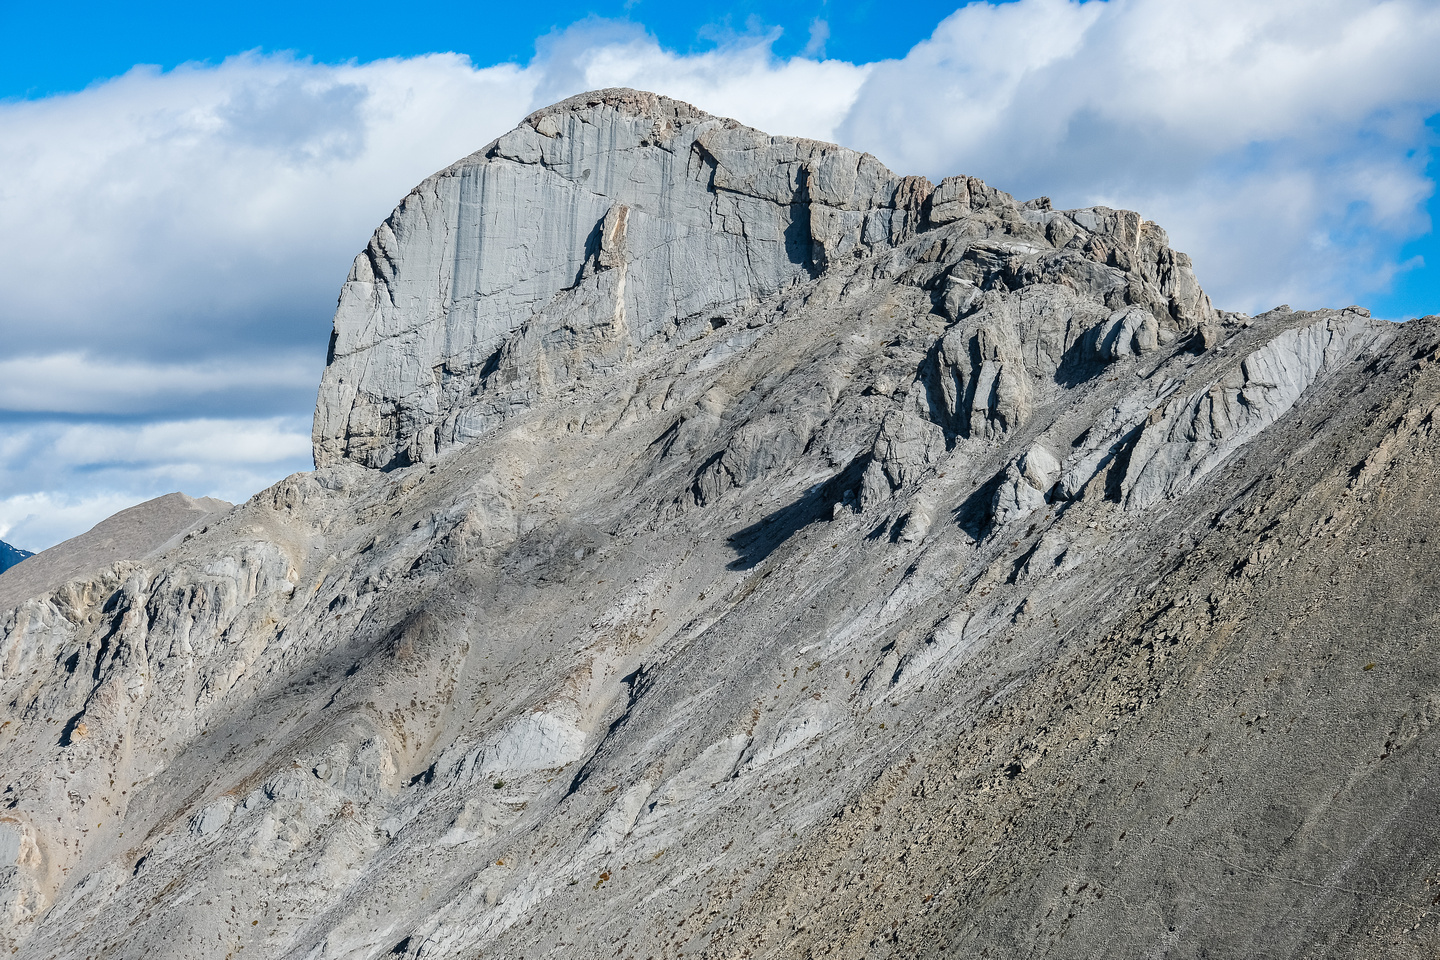 Marvel Peak has some impressive cliffs - our route goes up and right along a bench at its base.